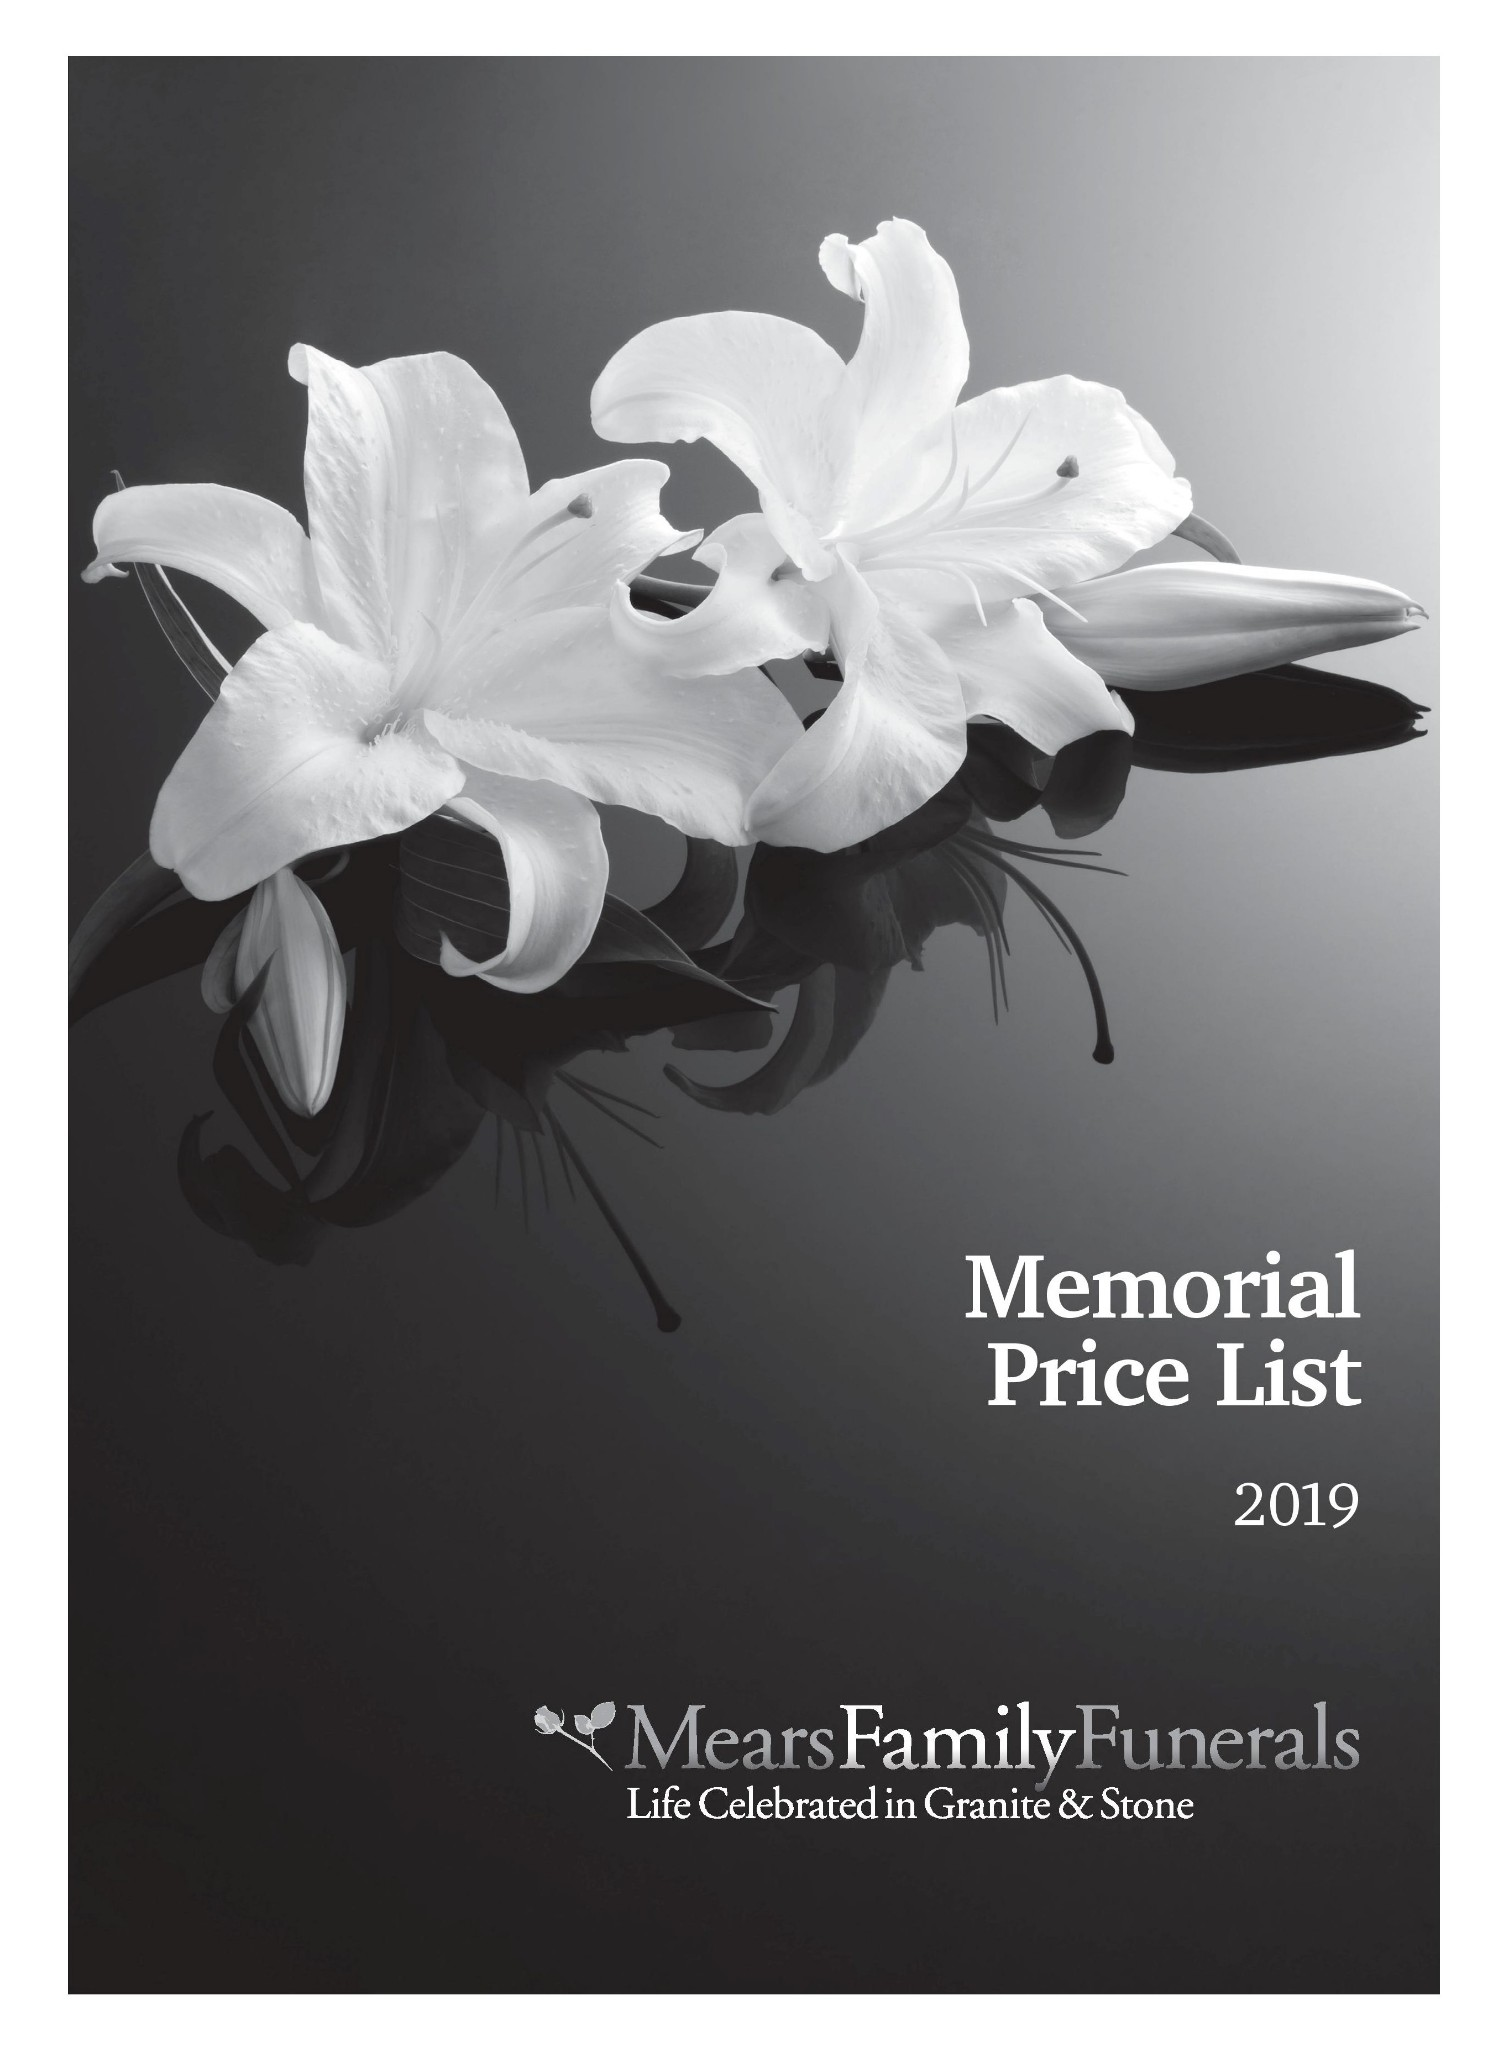 mears-family-funerals-memorials-price-list-2019_web-1-page-001